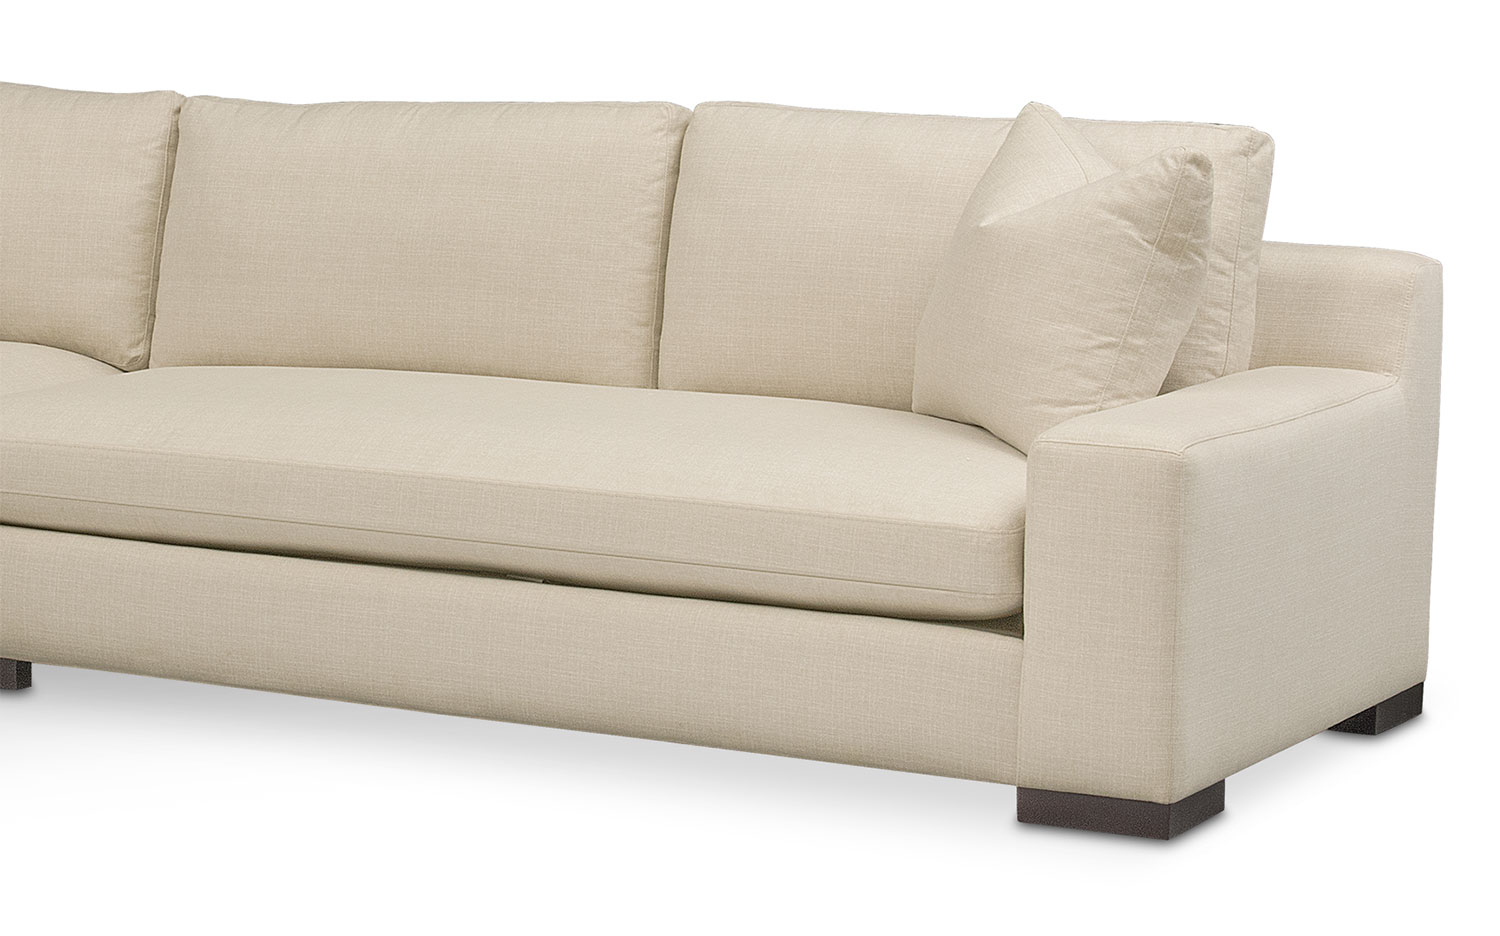 Ethan 2 Piece Sectional With Sofa   Value City Furniture And Mattresses With Regard To Ethan Console Tables (Photo 25 of 30)